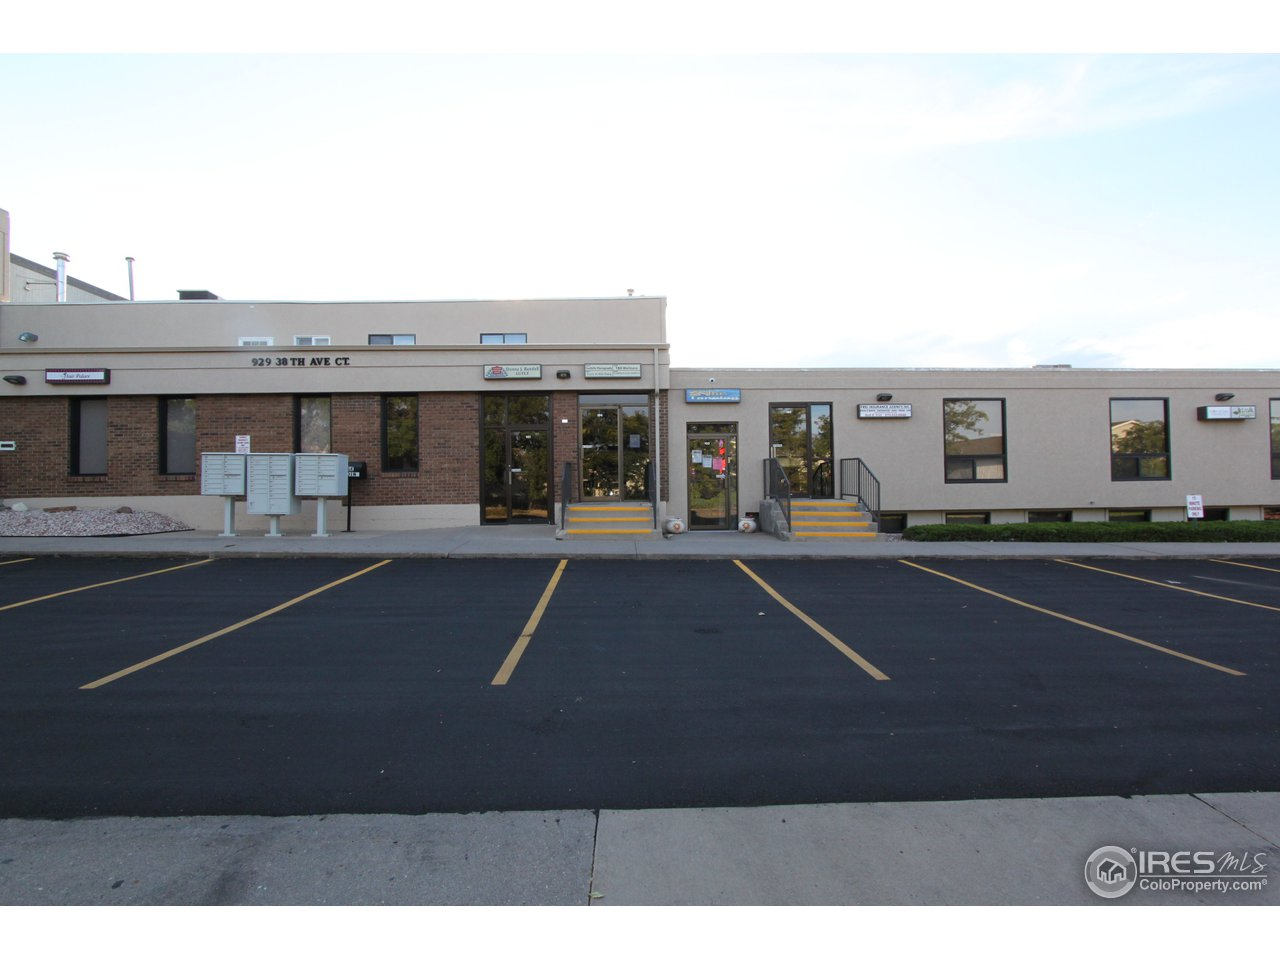 929 38TH AVE CT #104A-104D, GREELEY, CO 80634